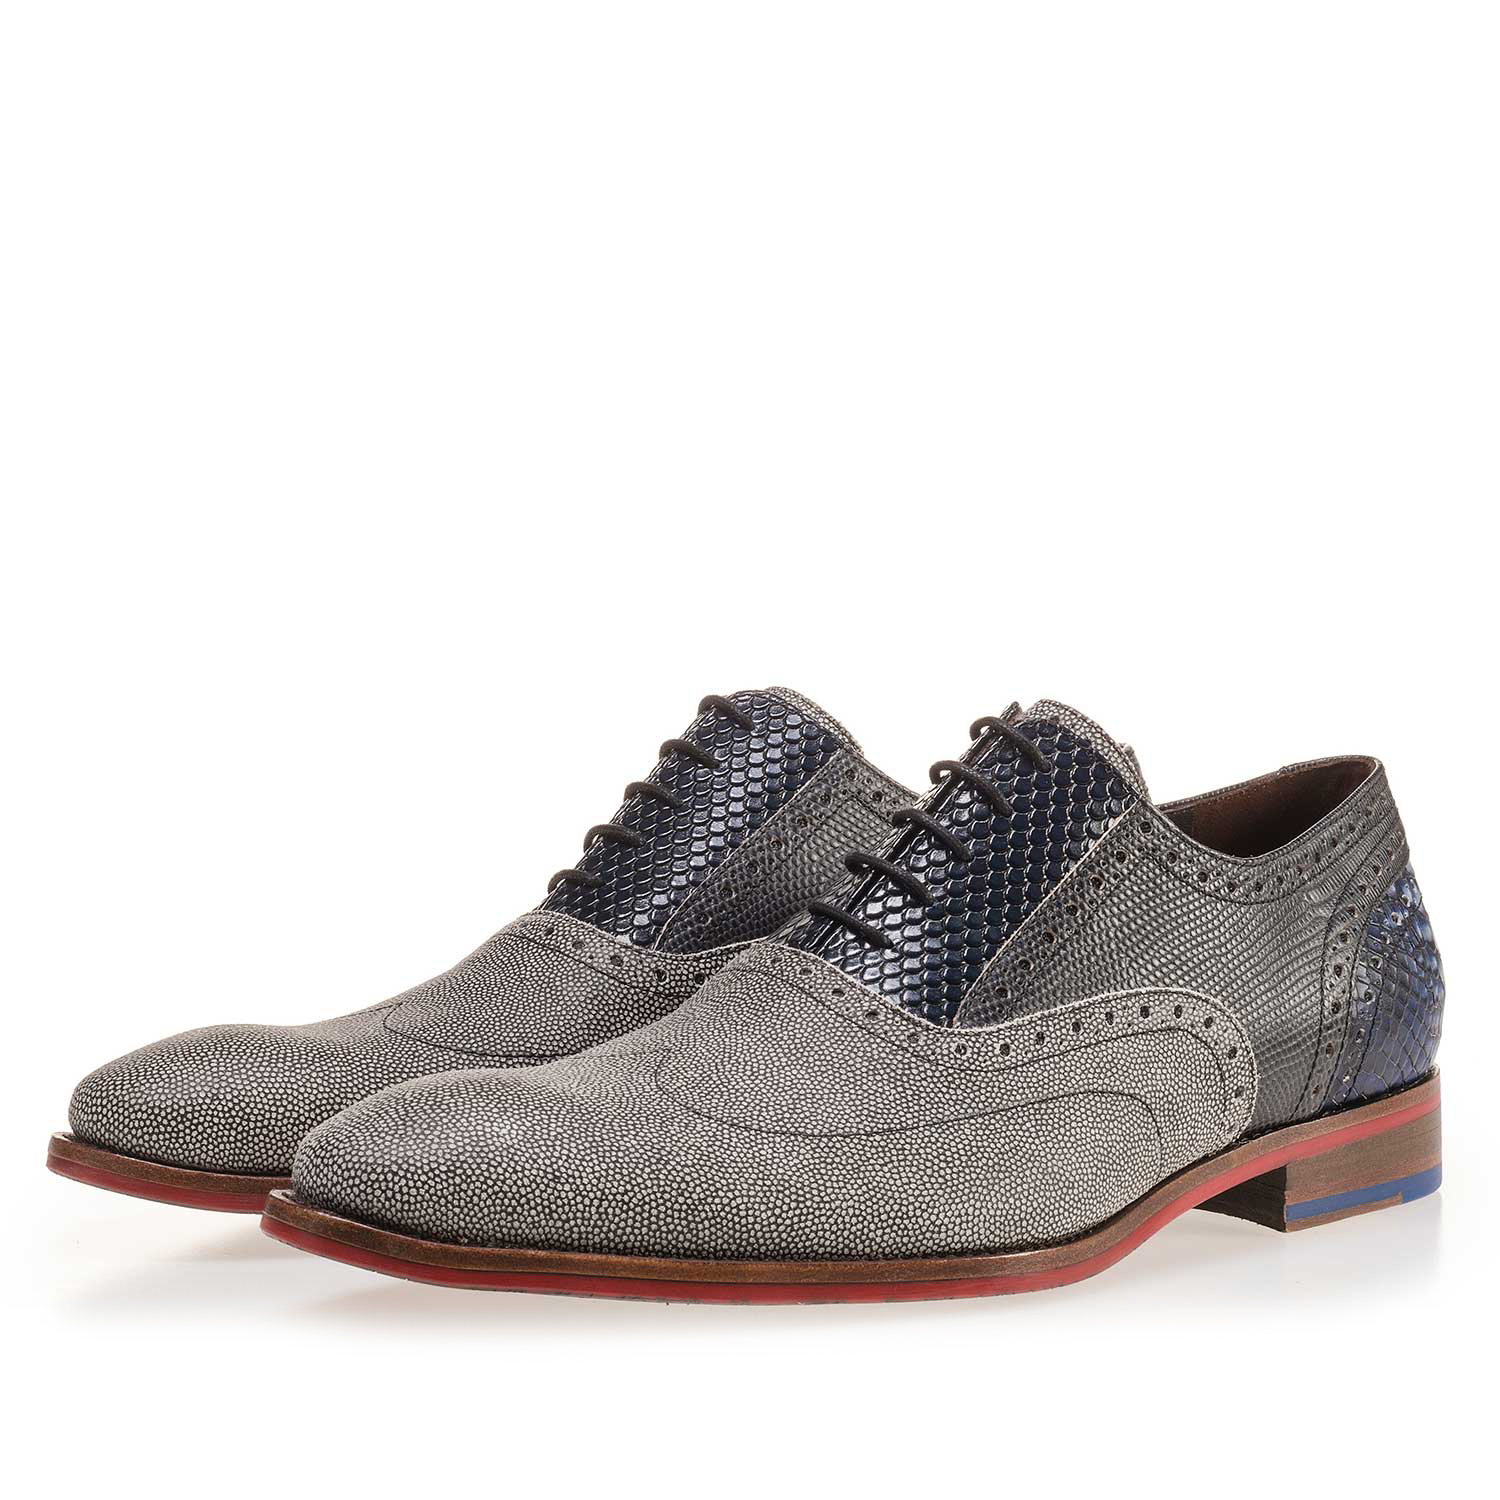 19114/00 - Grey, patterned suede leather lace shoe